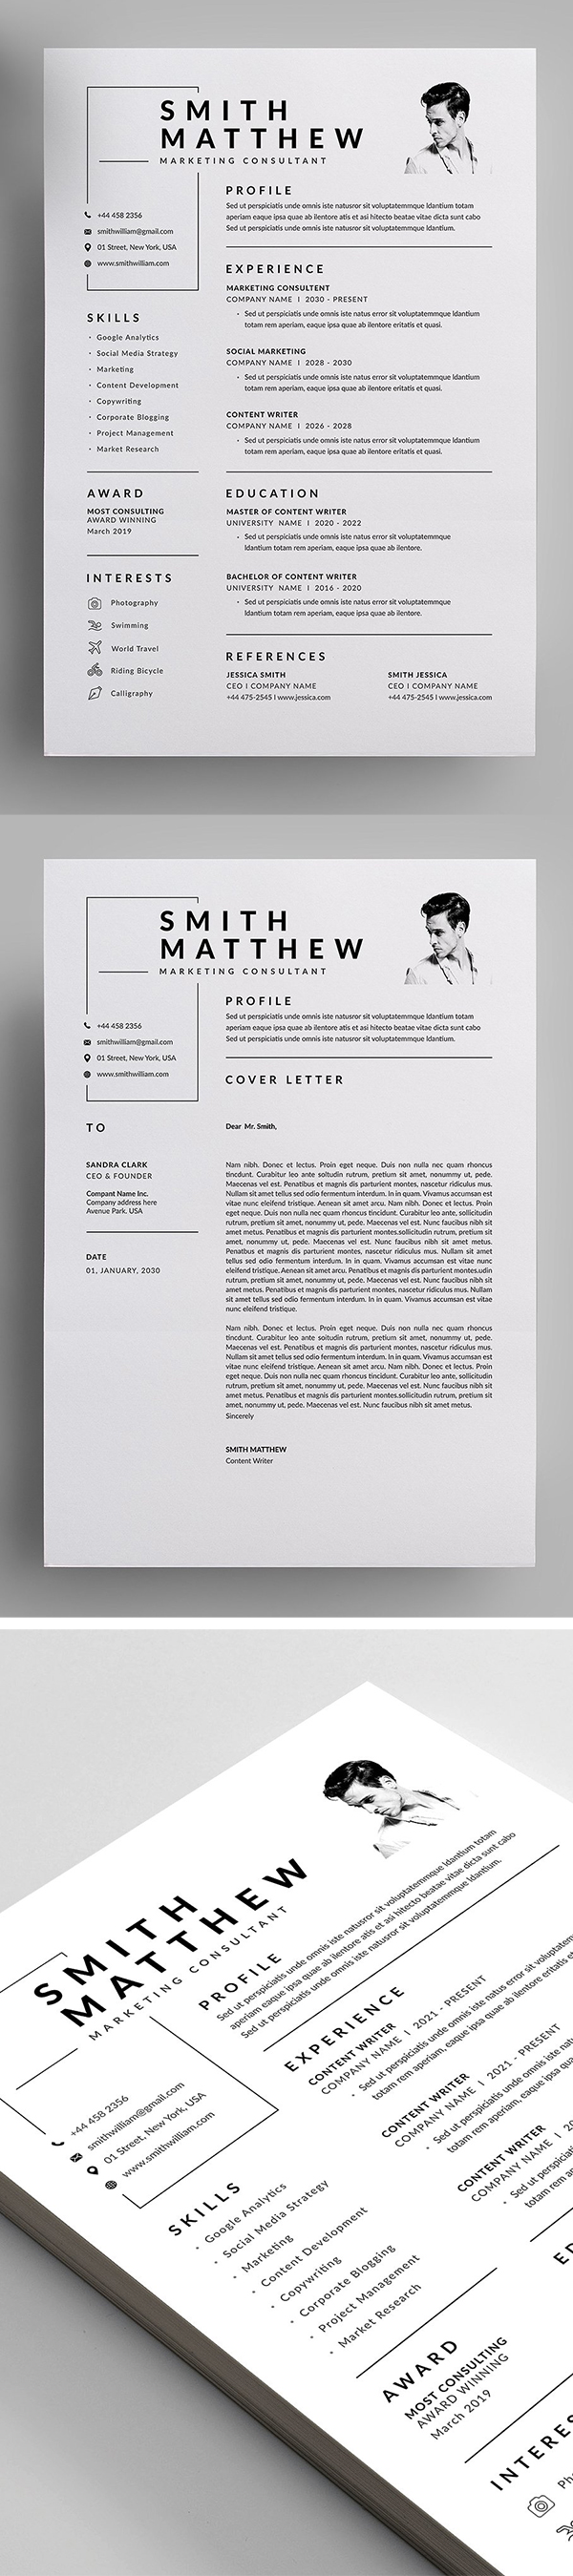 Professional Resume and Letterhead